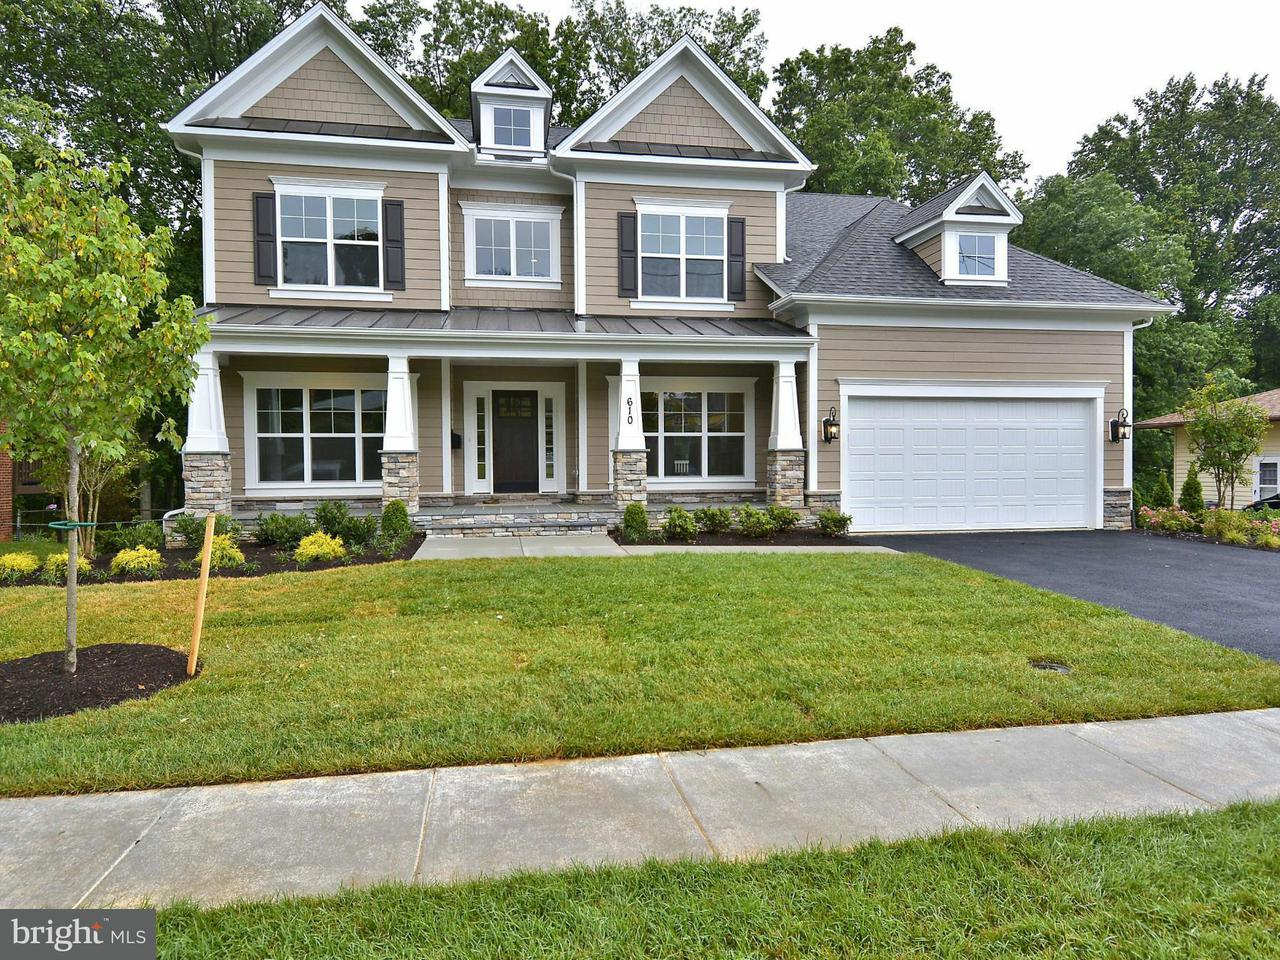 Additional photo for property listing at 4115 Burke Station Road 4115 Burke Station Road Fairfax, Virginia 22032 Stati Uniti